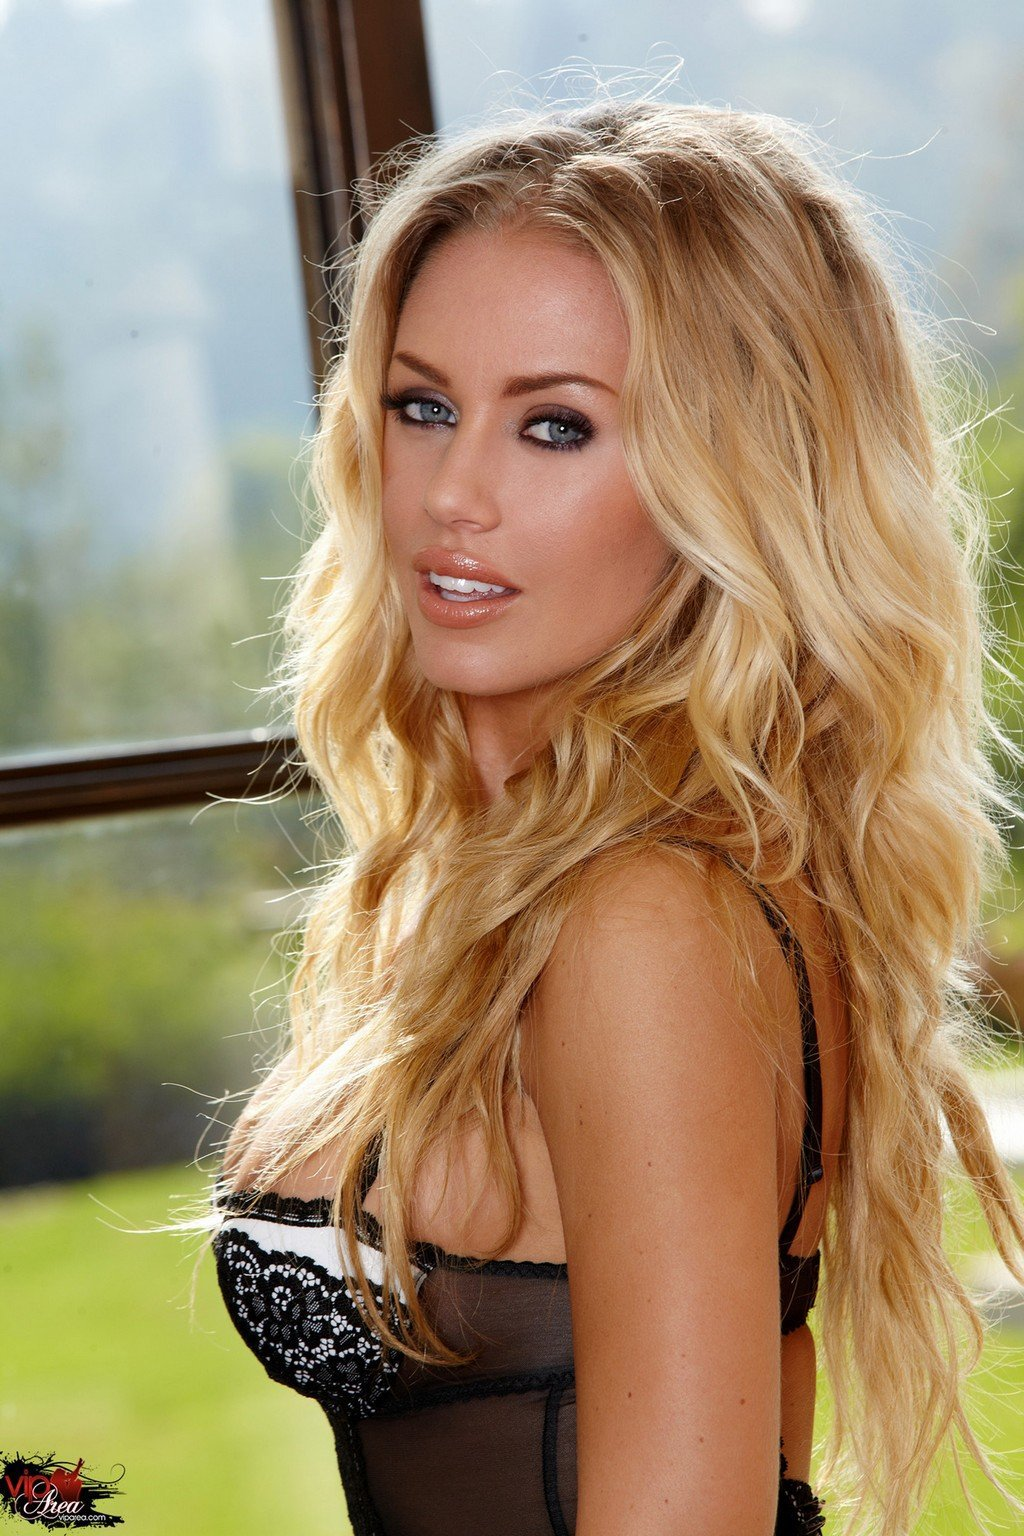 Nicole Aniston Wallpaper For Android